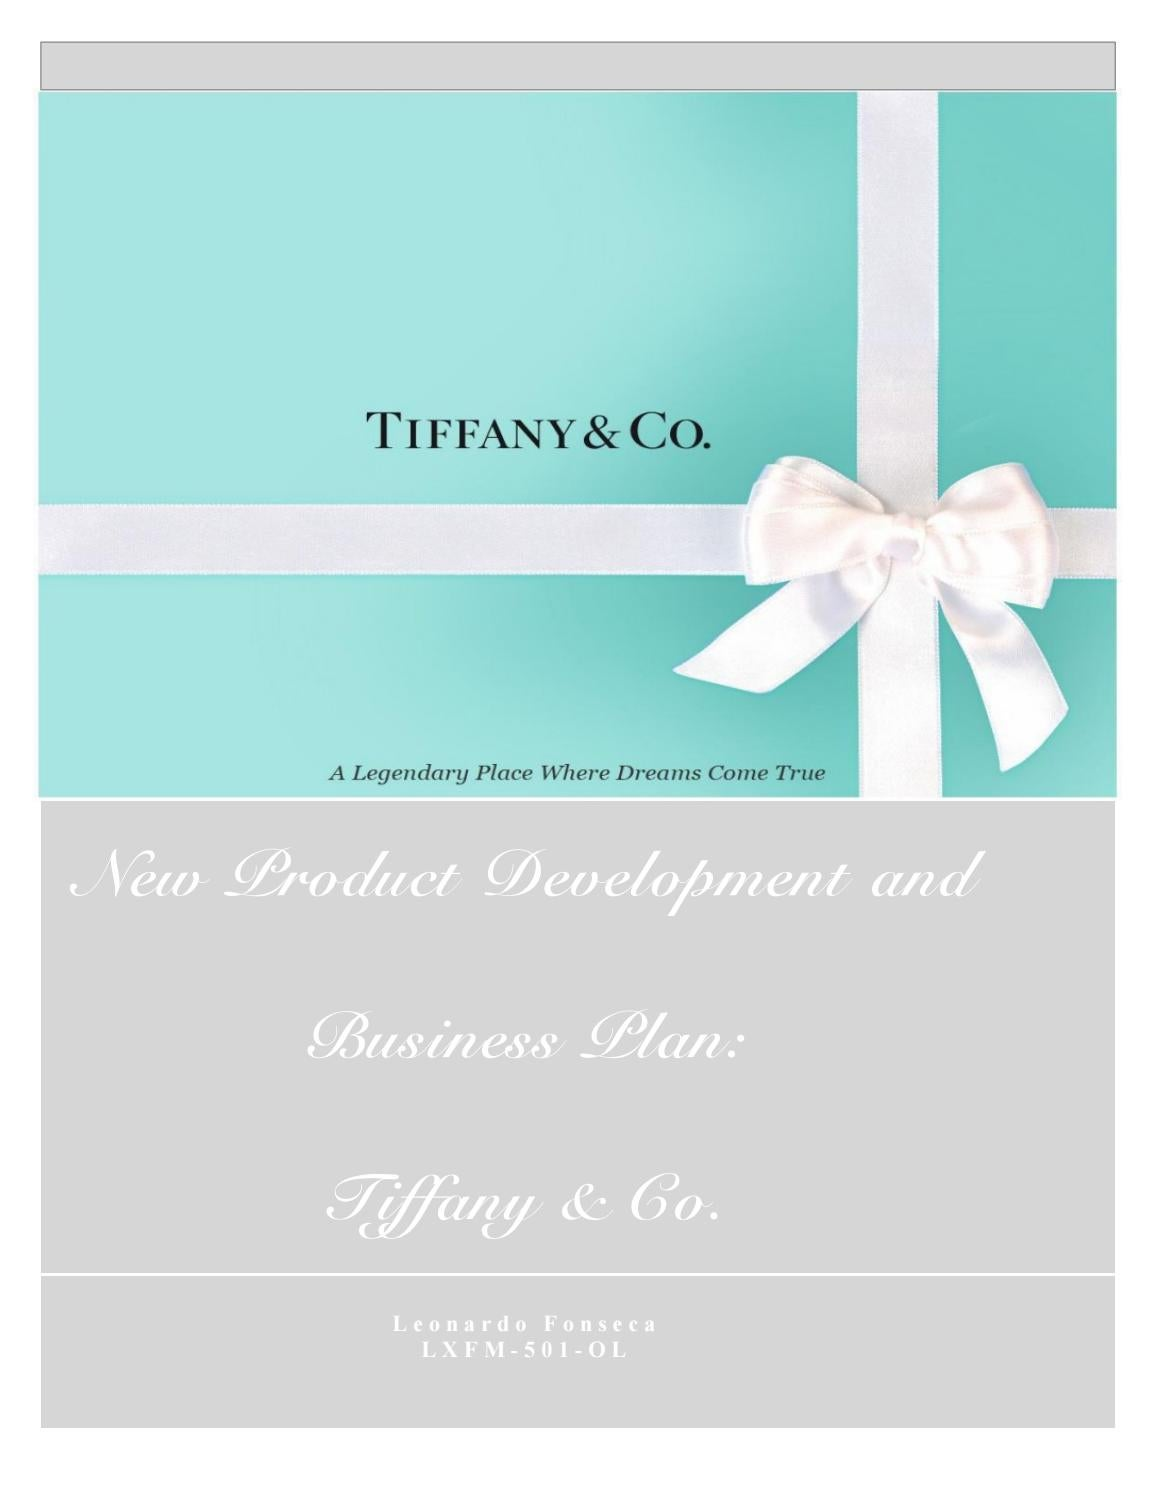 New Product Development And Business Plan For Tiffany Co By Leonardo Fonseca Issuu